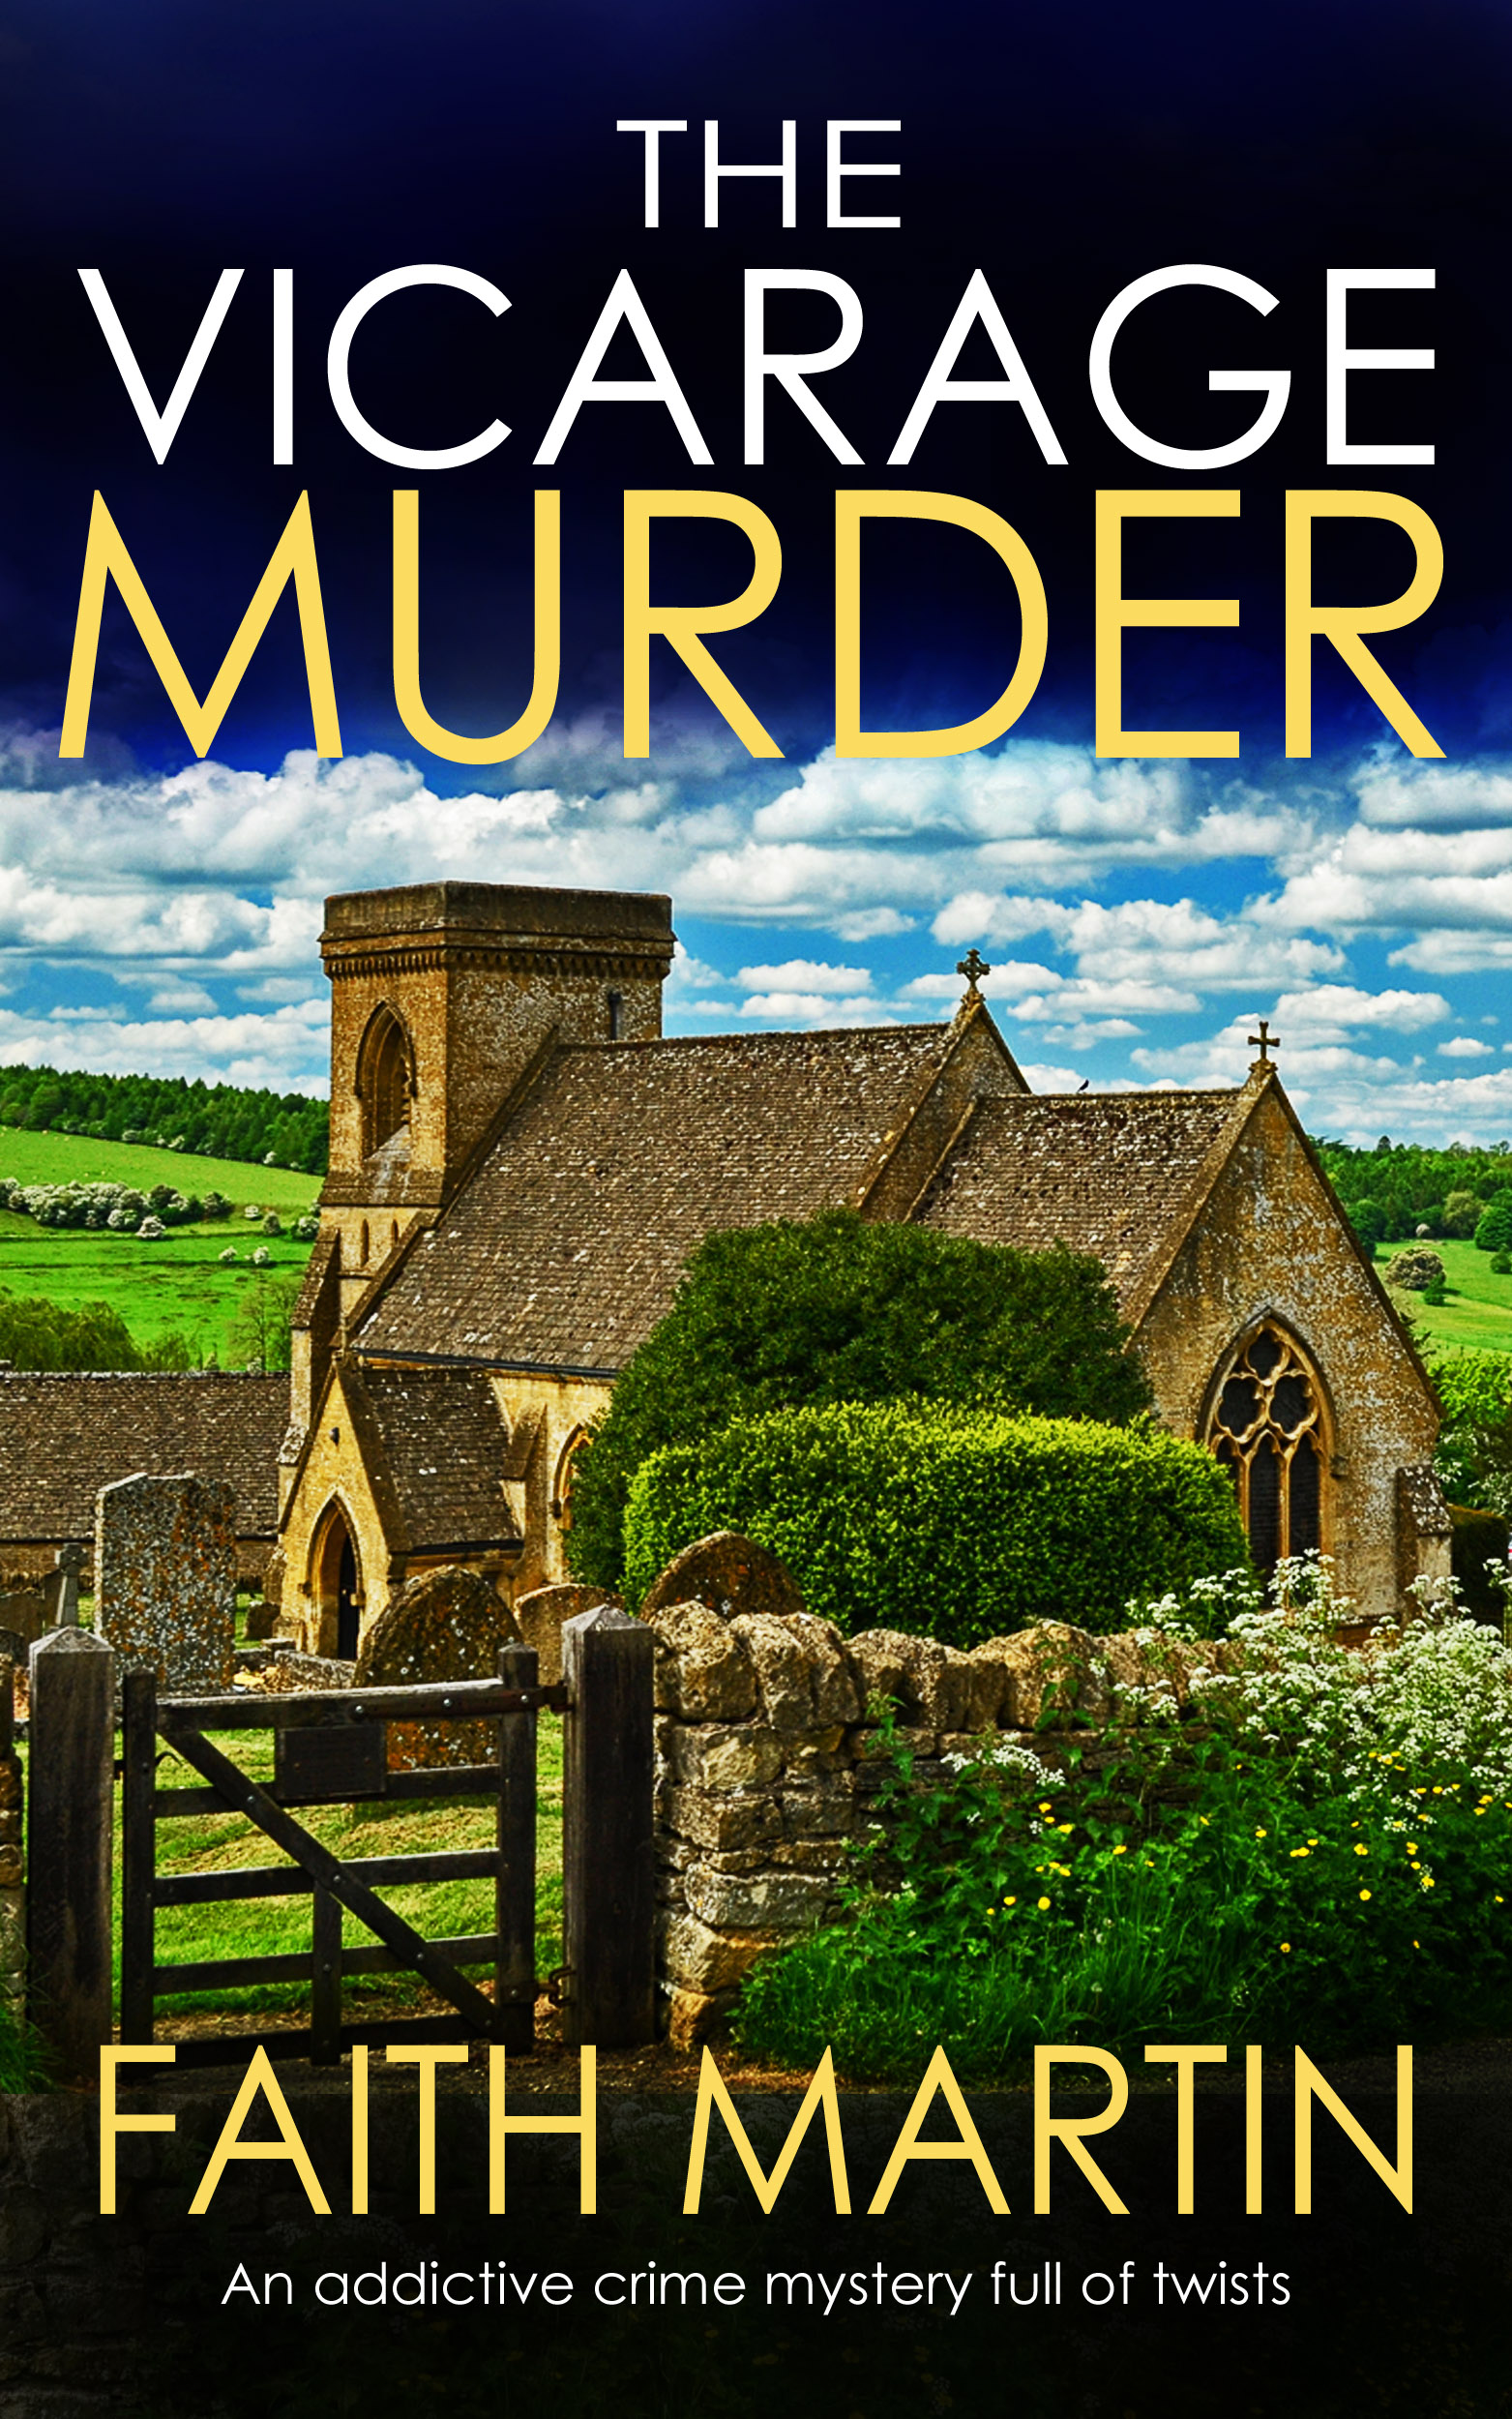 THE VICARAGE MURDER.jpg